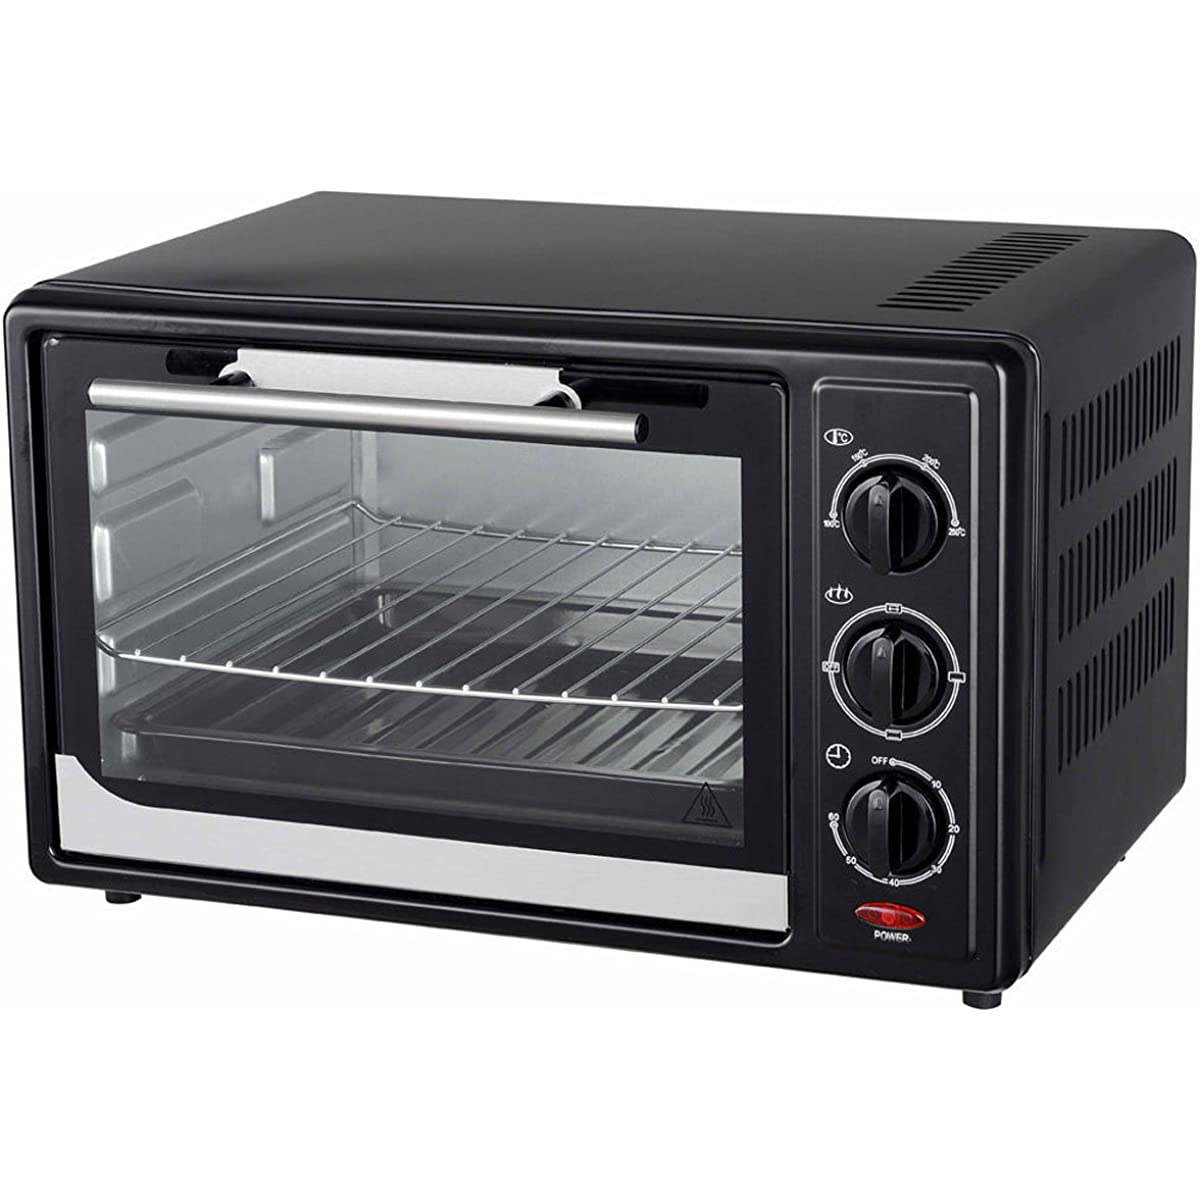 Grafner Mini-Backofen